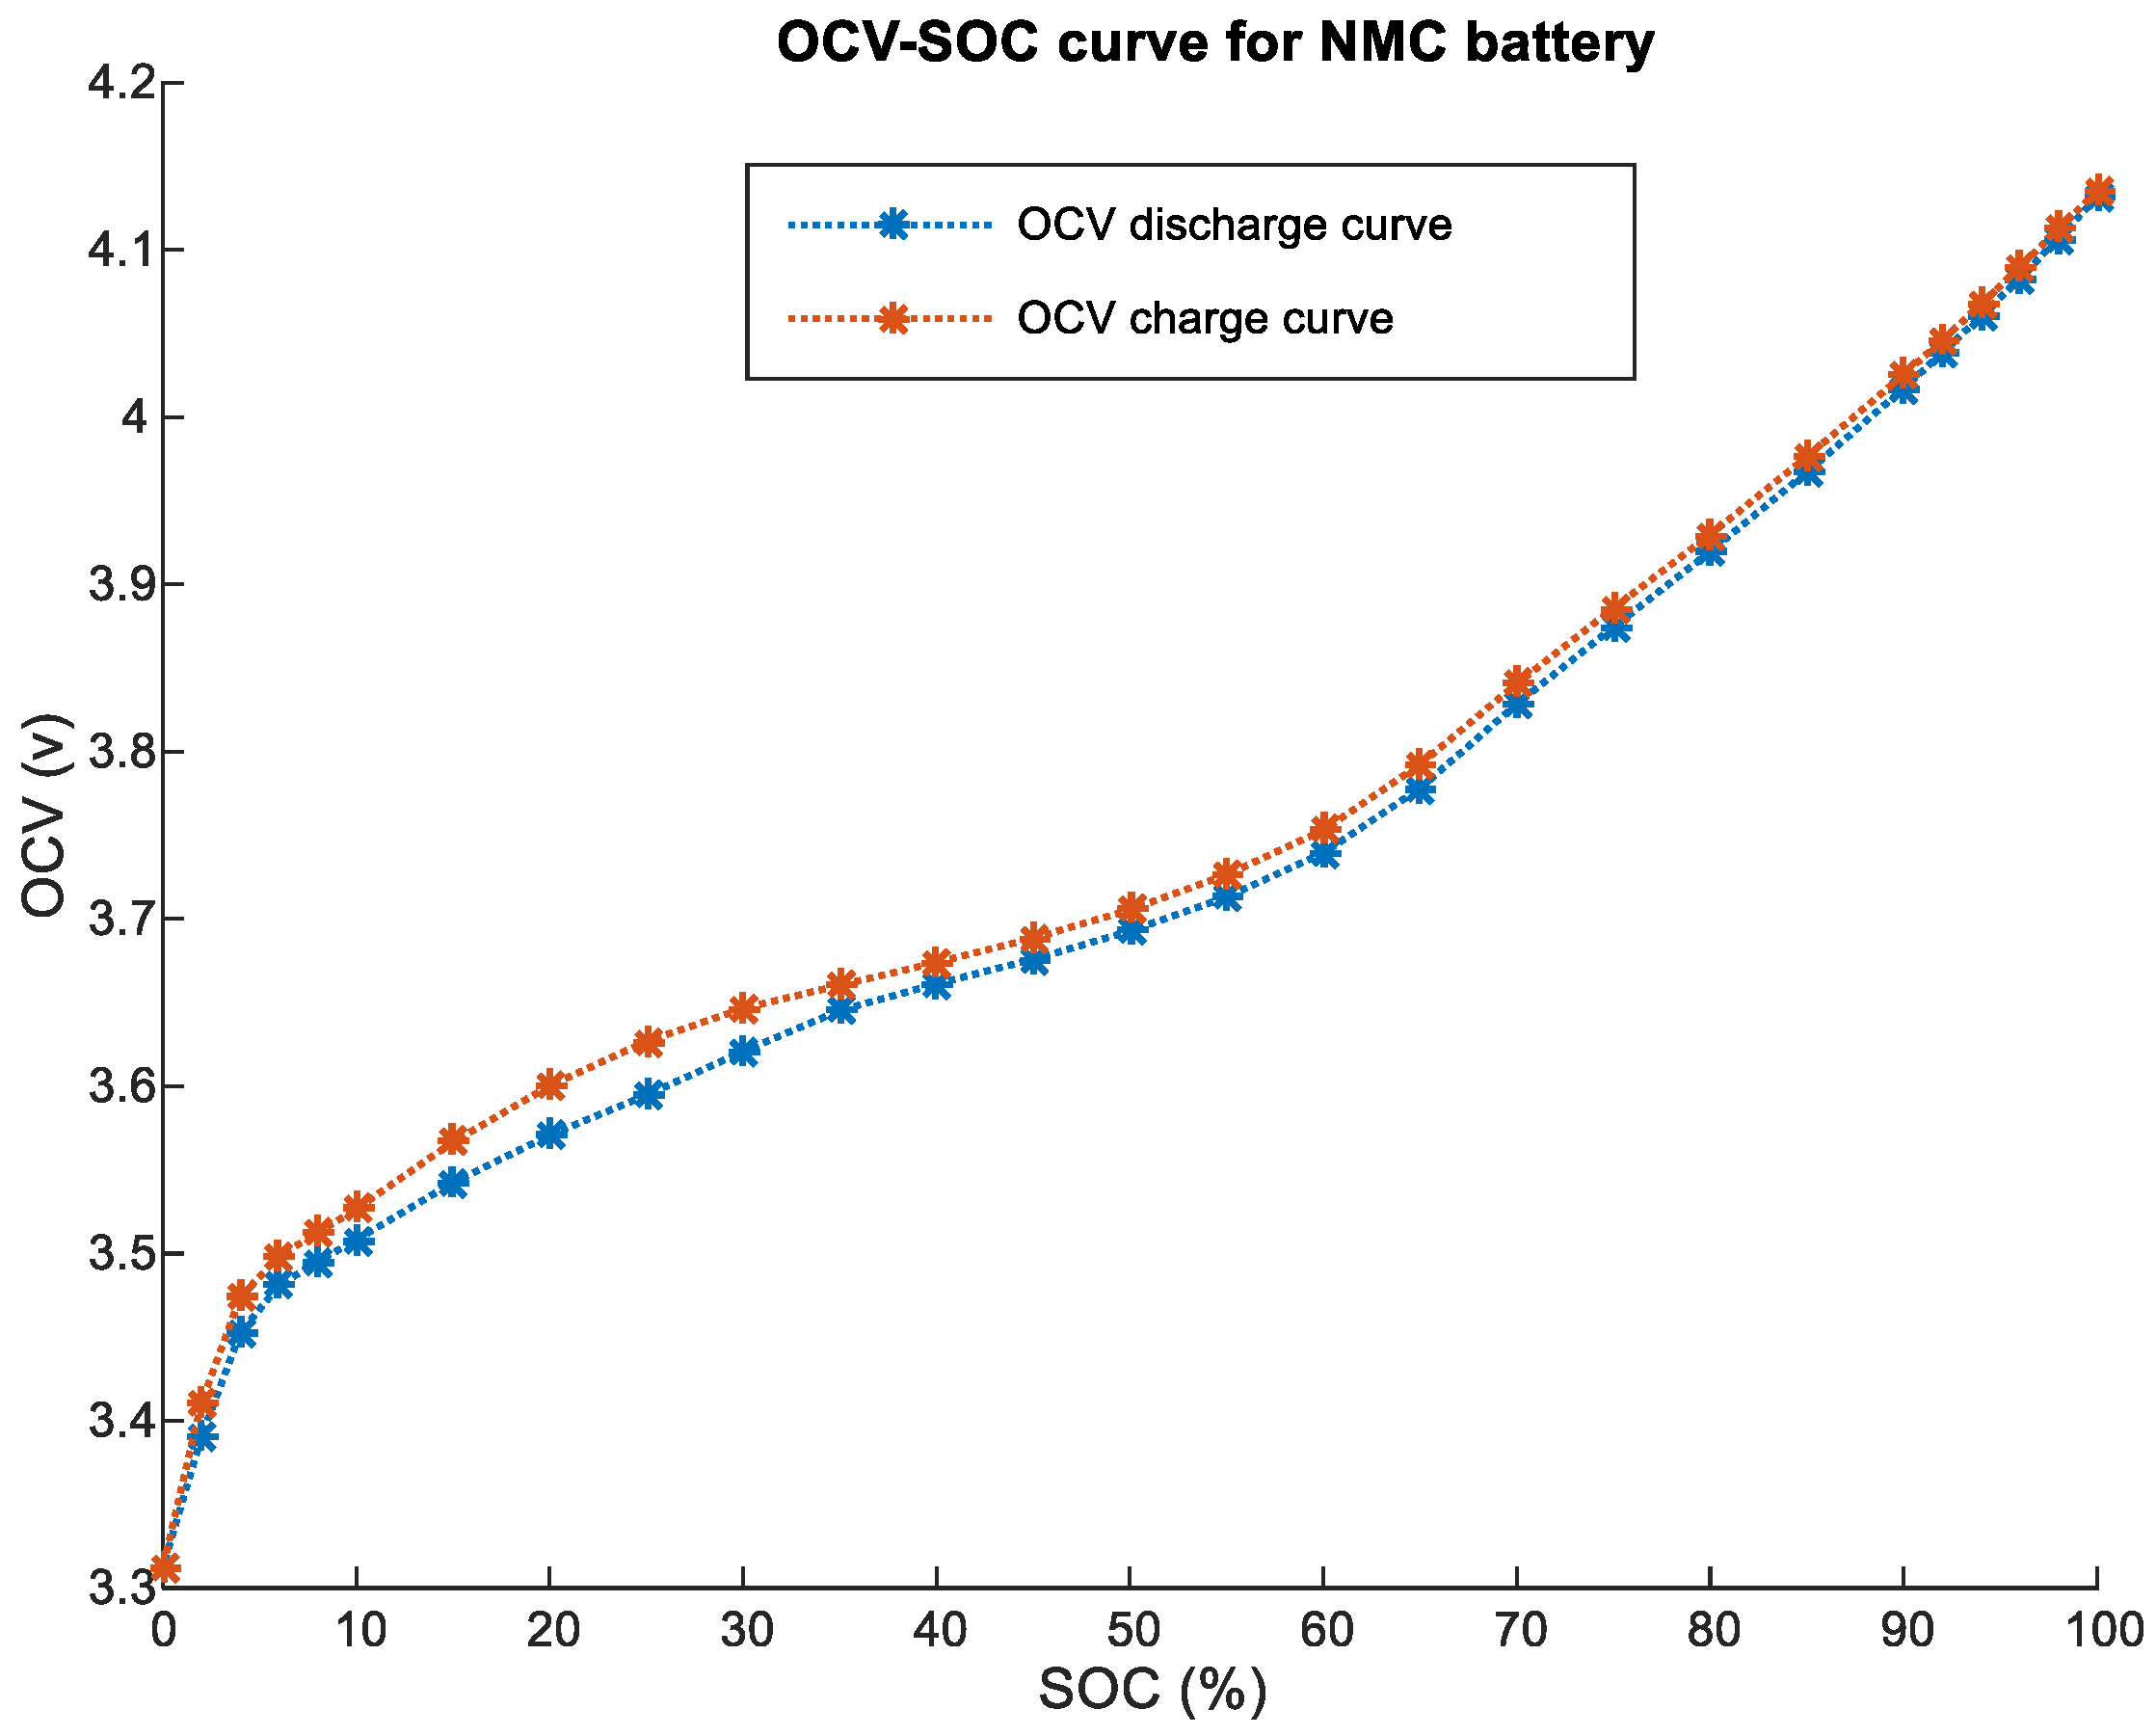 Lithium Ion Battery >> Energies | Free Full-Text | Improved OCV Model of a Li-Ion NMC Battery for Online SOC Estimation ...